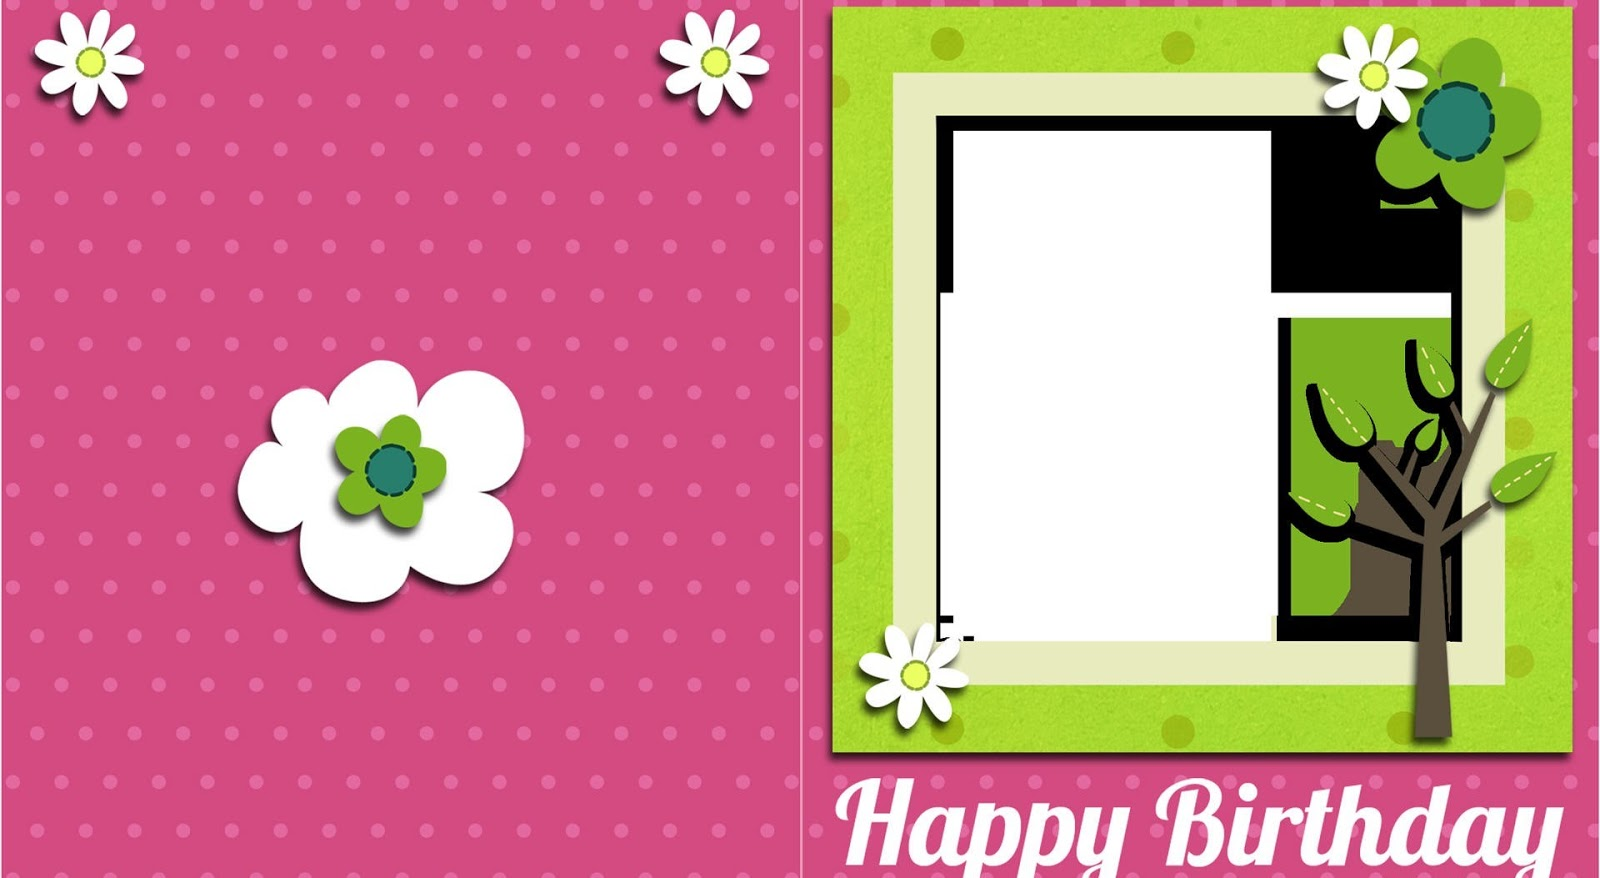 birthday wishes card download ; Happy-Birthday-greeting-card-stock-template-HD-free-download